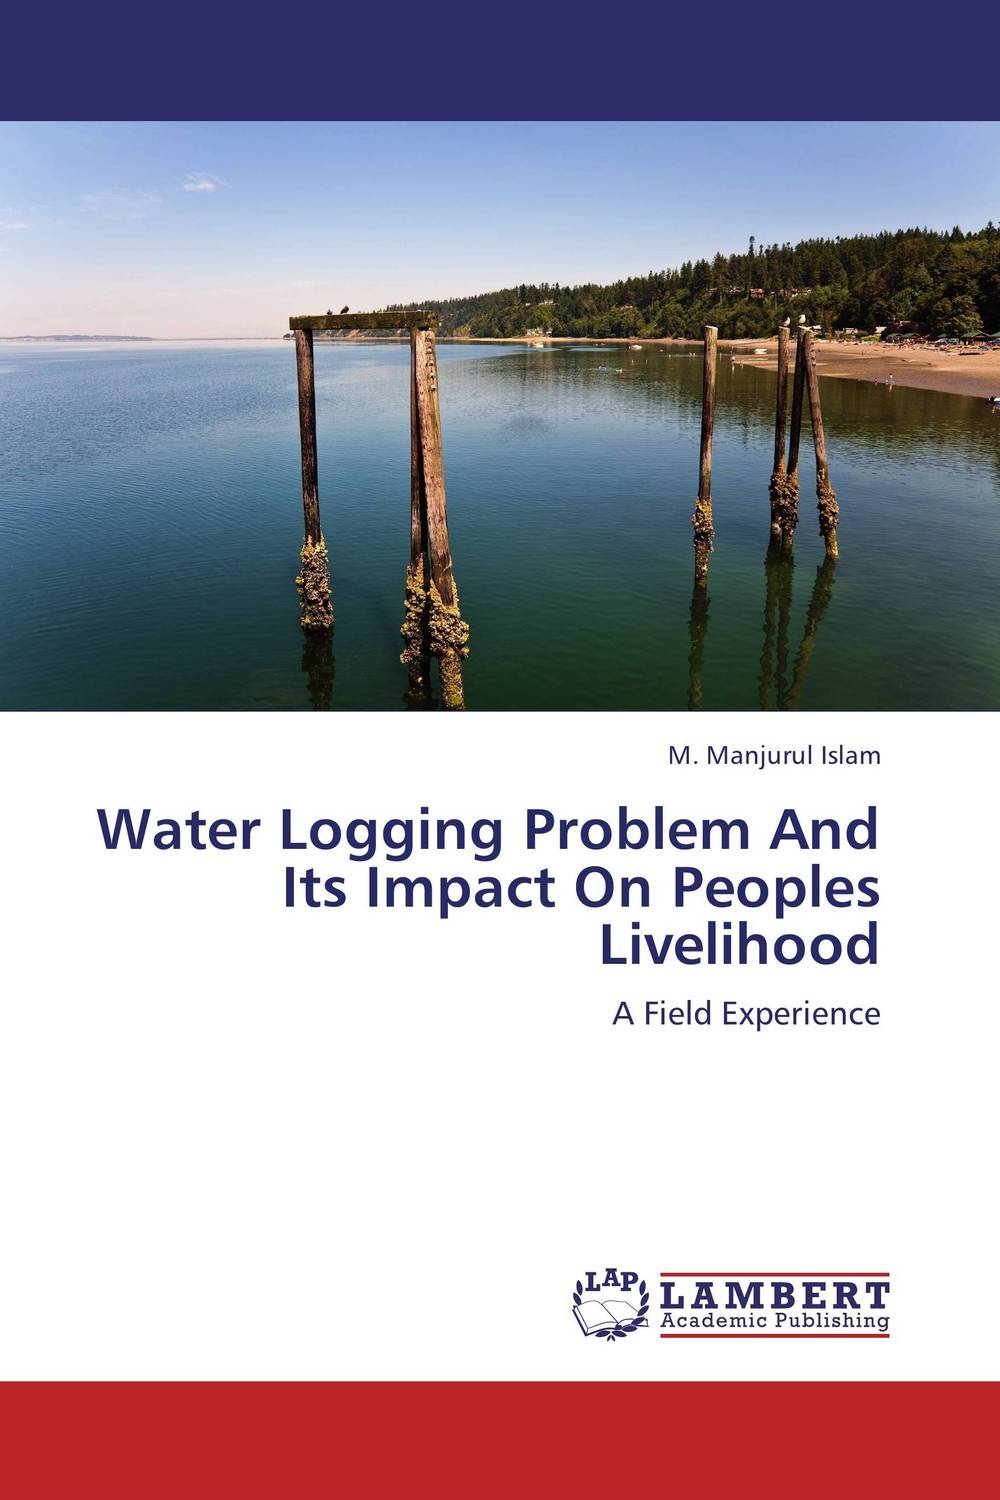 Water Logging Problem And Its Impact On Peoples Livelihood psychiatric disorders in postpartum period